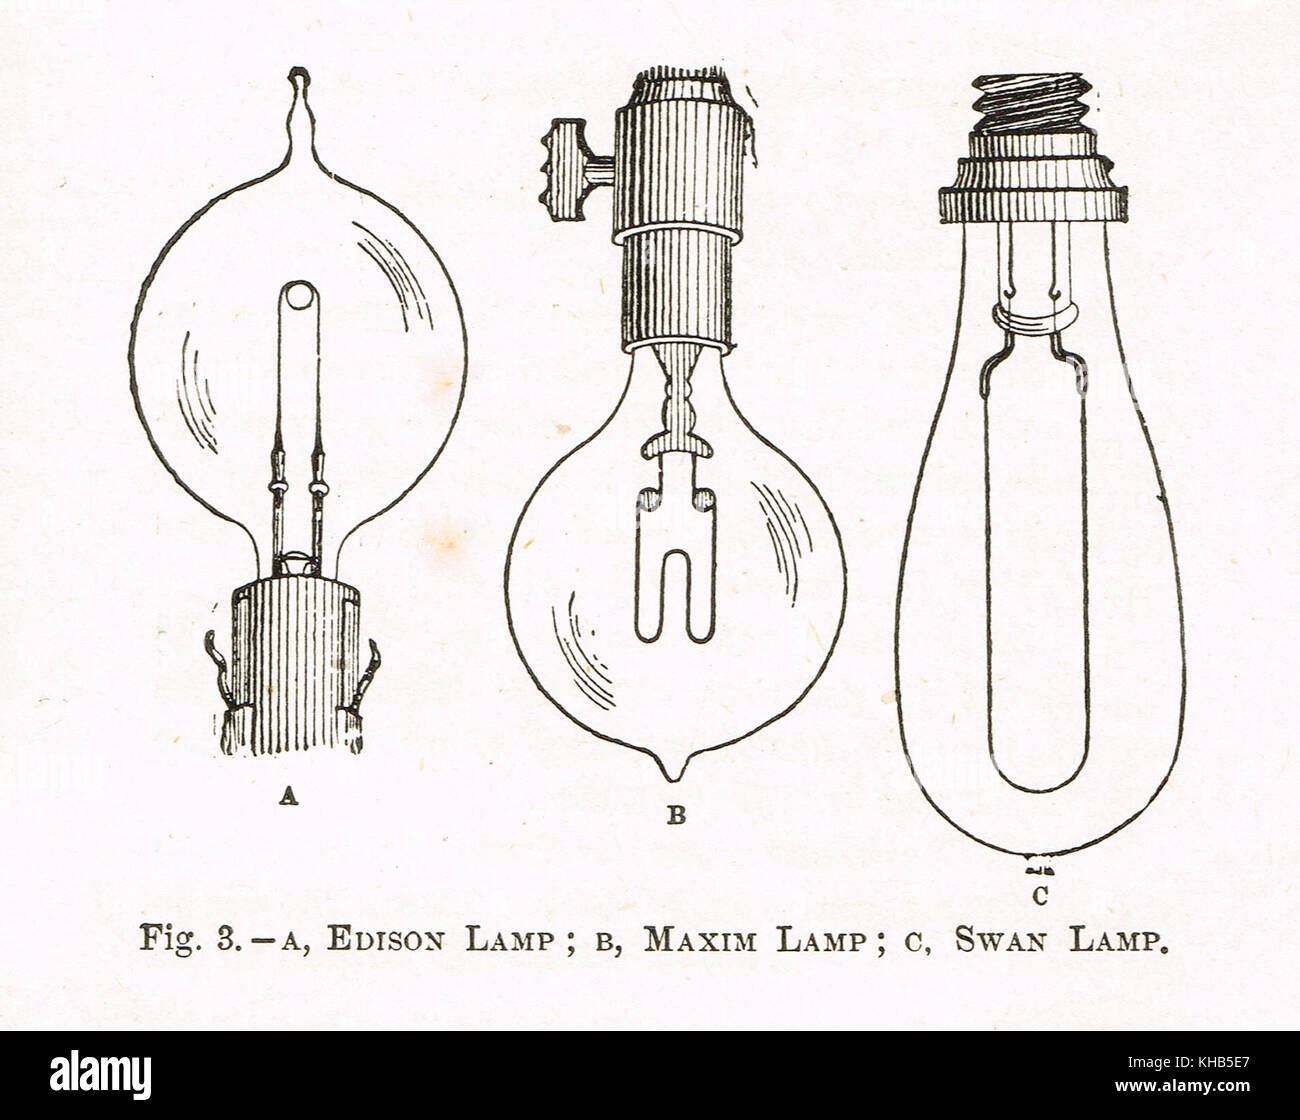 Edison Lamp Stock Photos Images Alamy Besides Incandescent Light Bulbs On Bulb Diagram Lamps 19th Century Illustration Of Maxim Swan